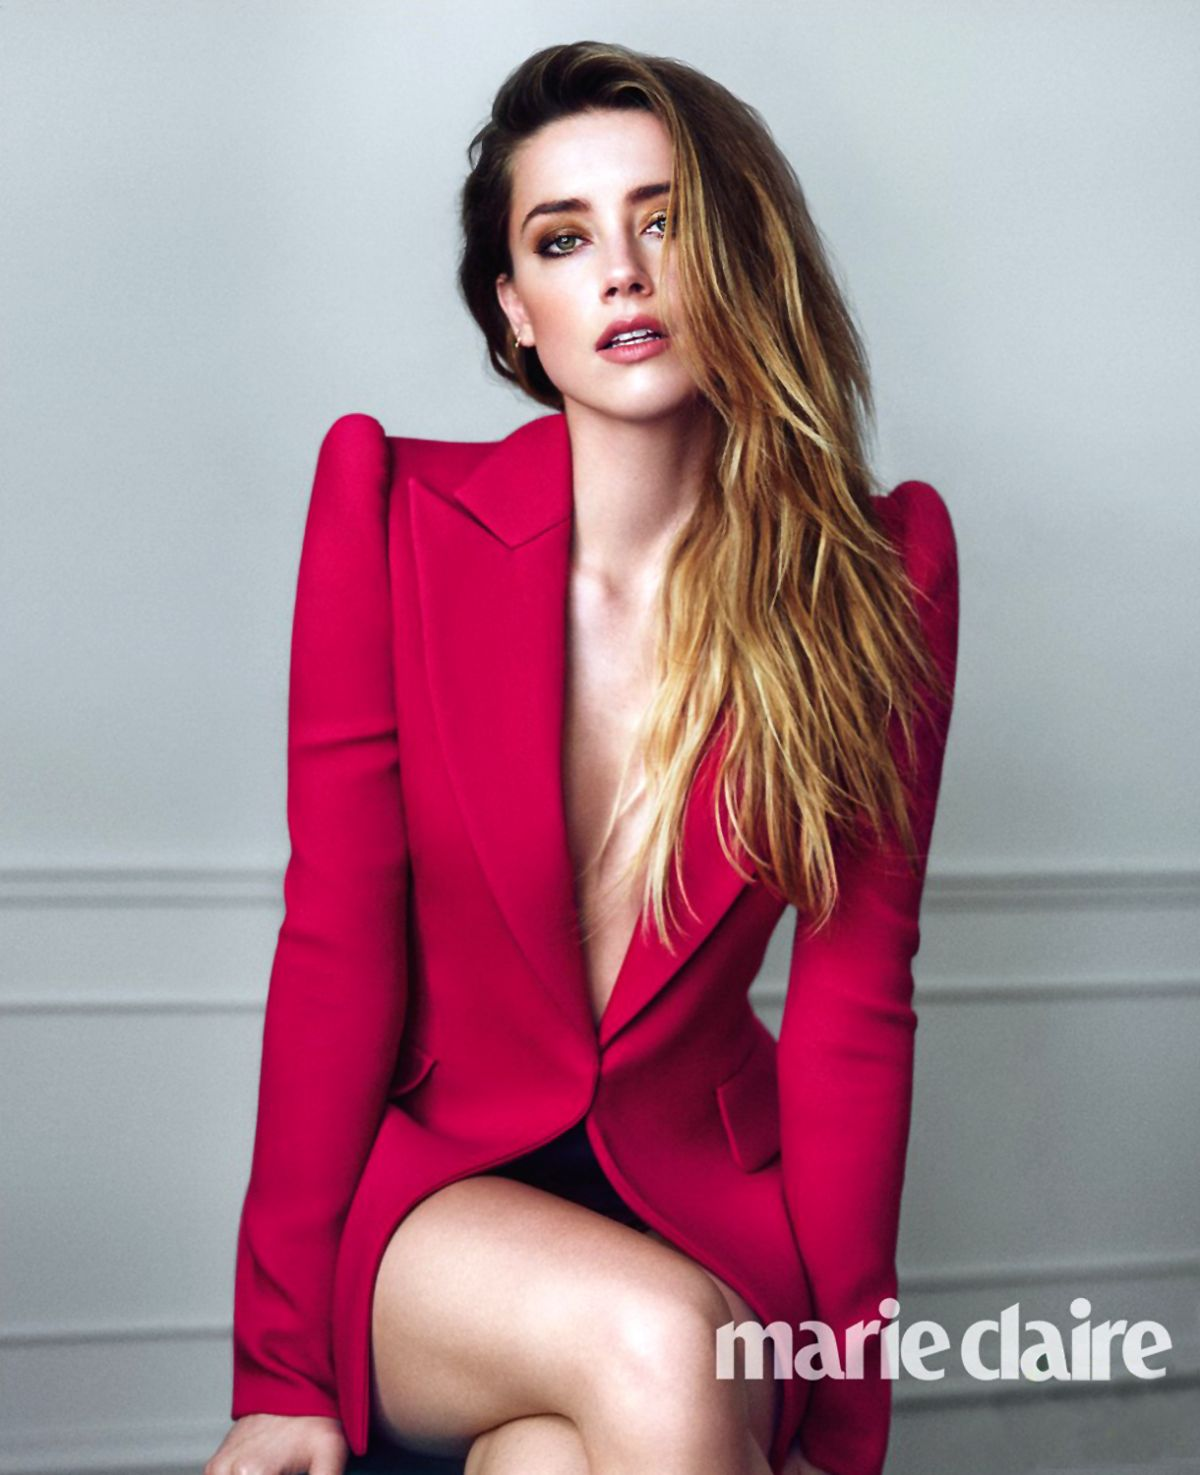 amber heard in marie claire magazine december 2015 issue hawtcelebs. Black Bedroom Furniture Sets. Home Design Ideas